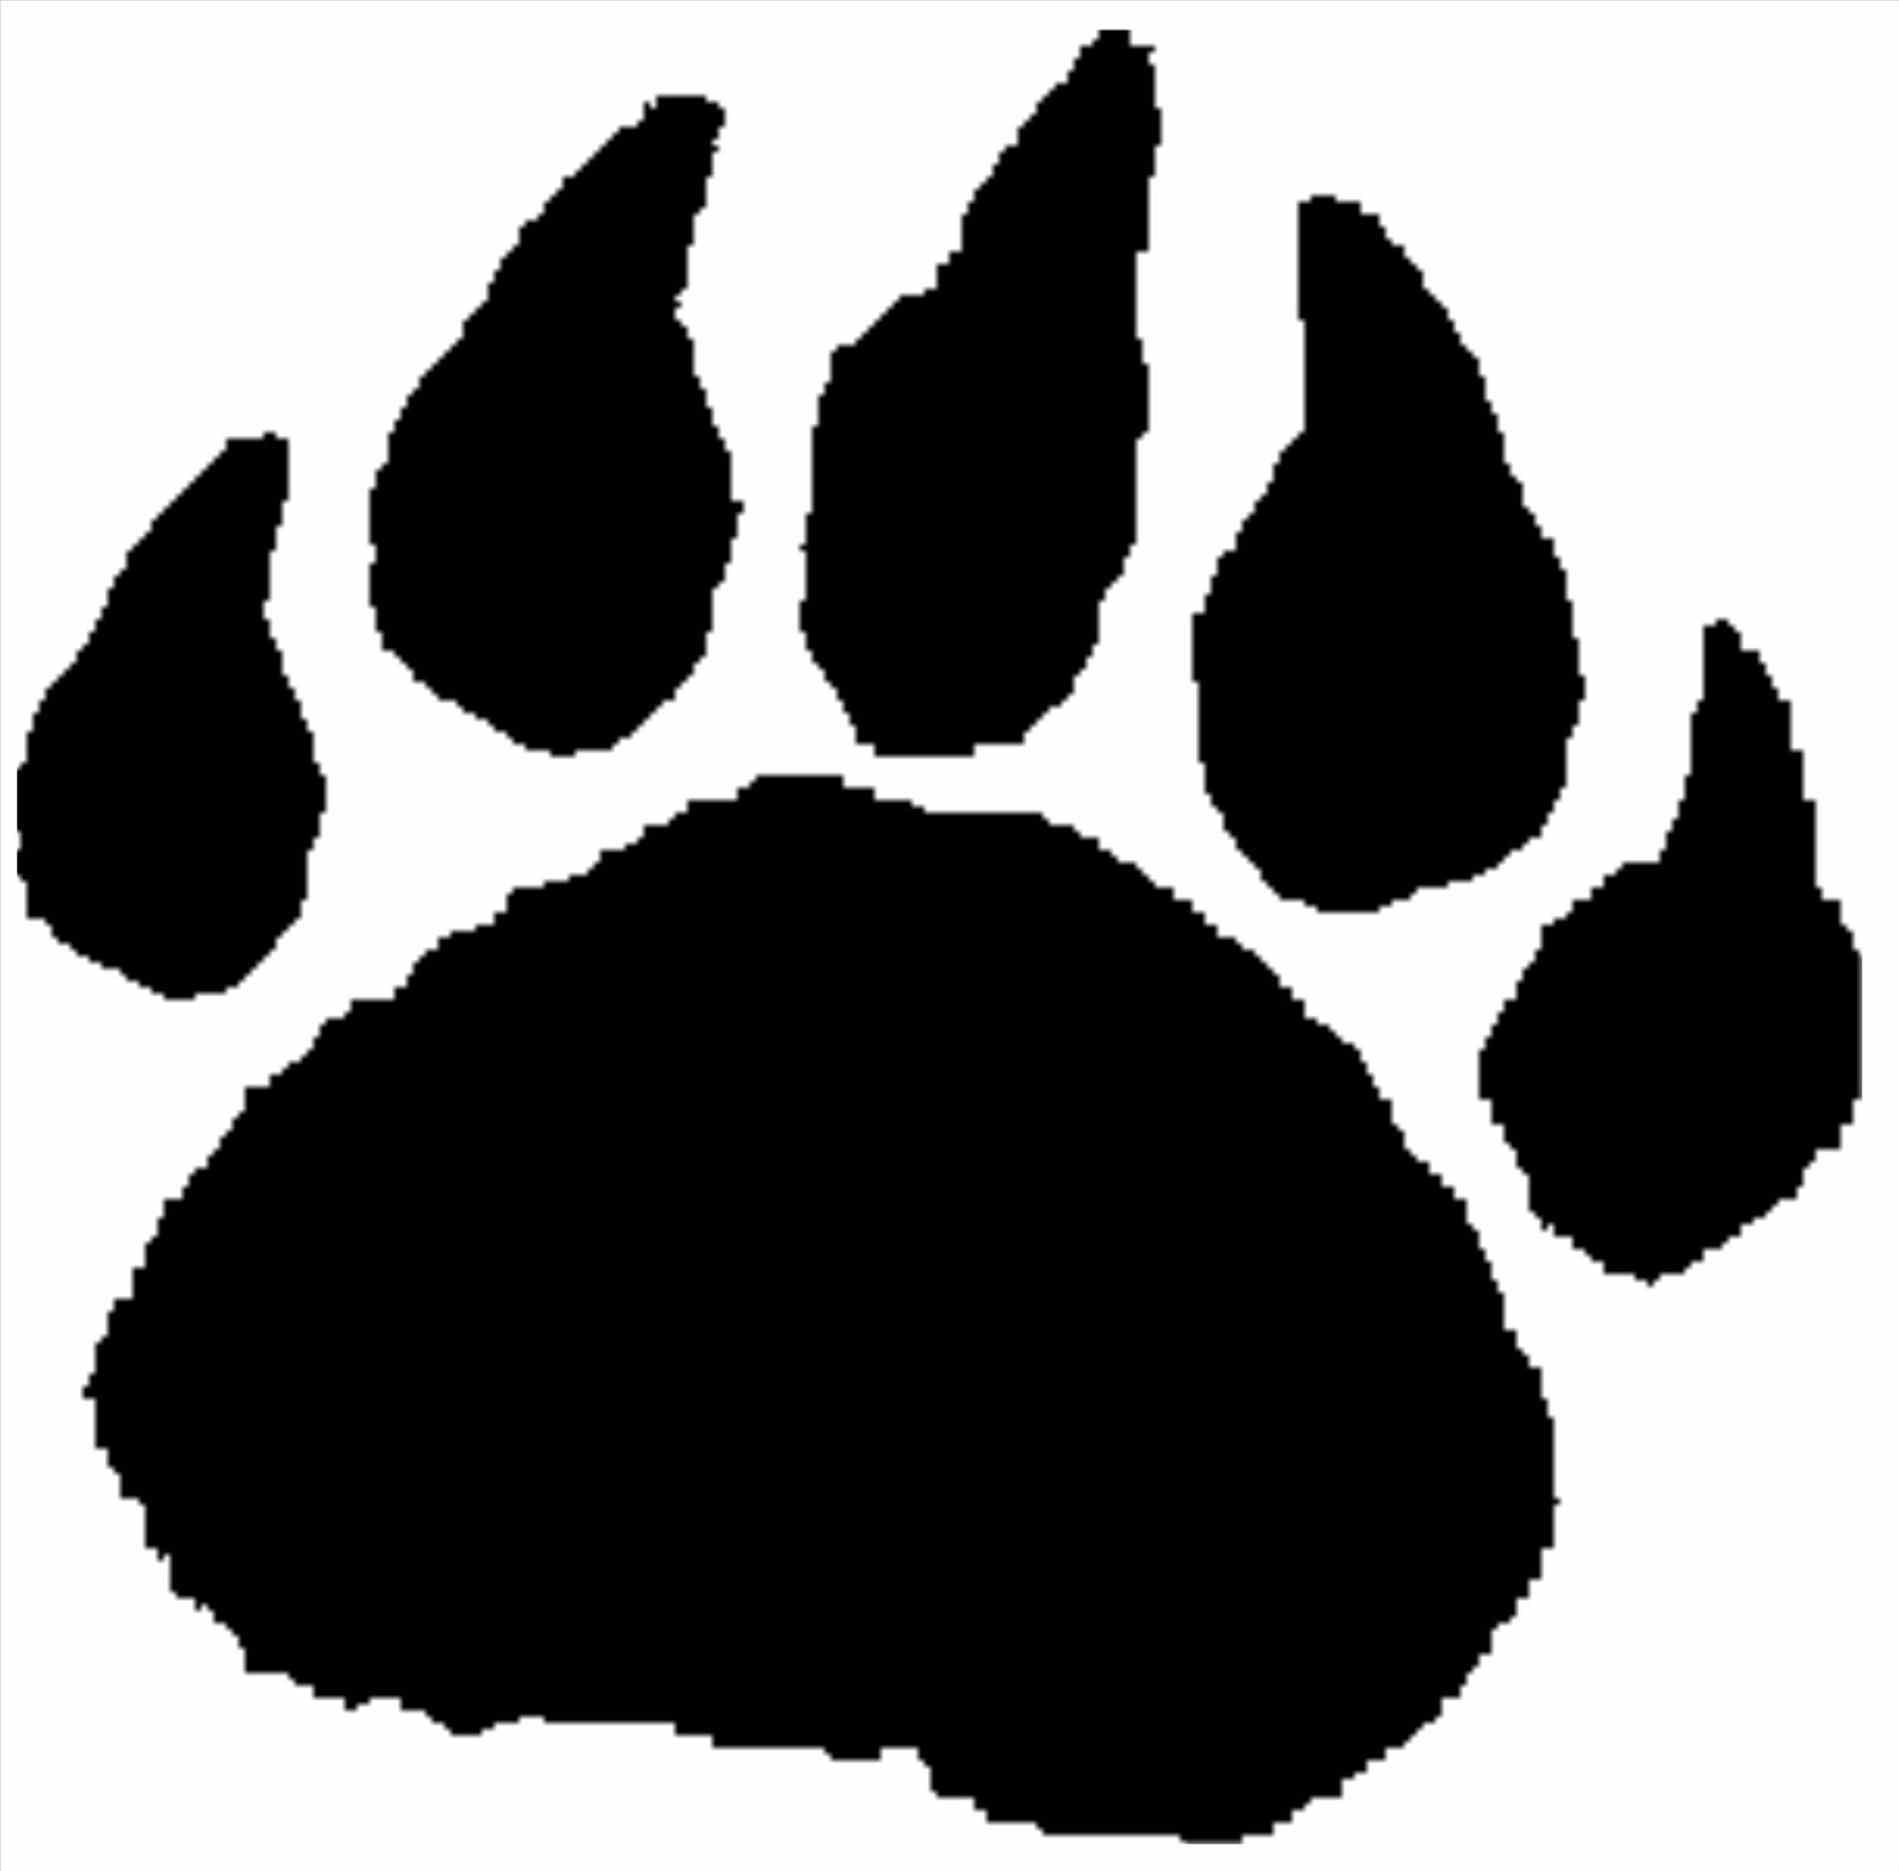 1899x1871 Baby Footprint Clipart Black And White Kain.party